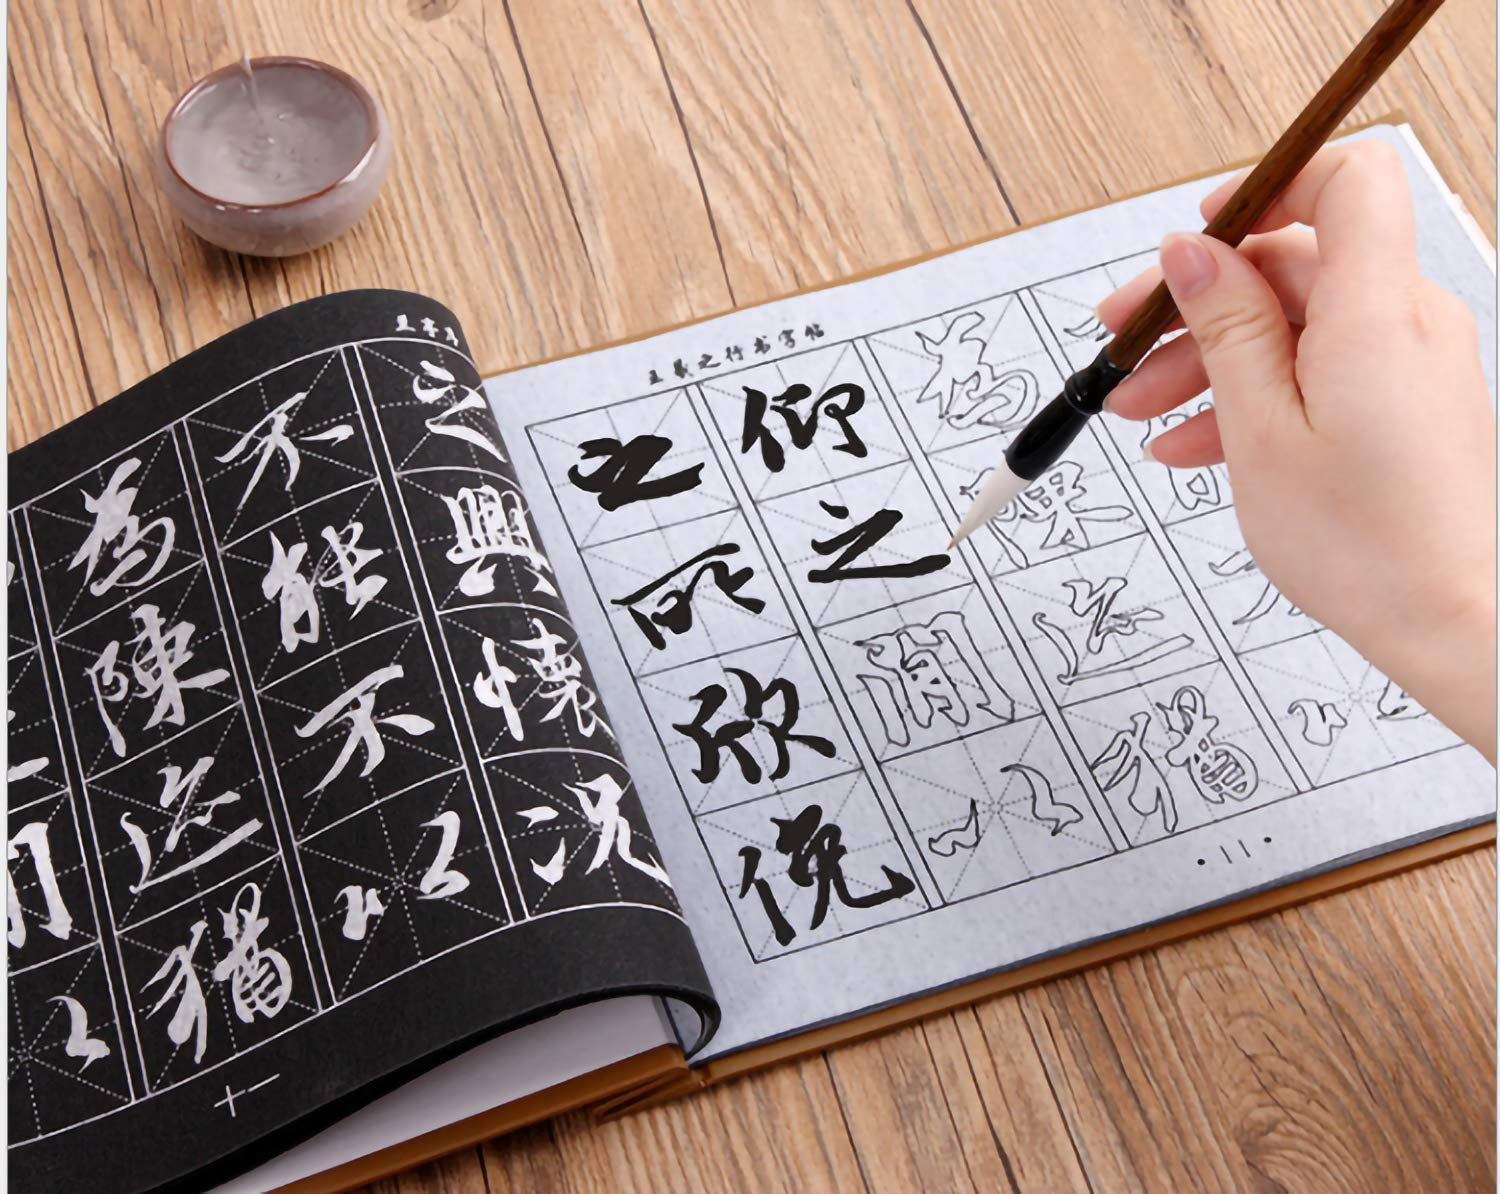 Rewritable Water Writing Chinese Calligraphy Cloth Fabric with Brush Rack and Water Dish Quick Drying Fabric Cloth Paper for Beginners Practice Set